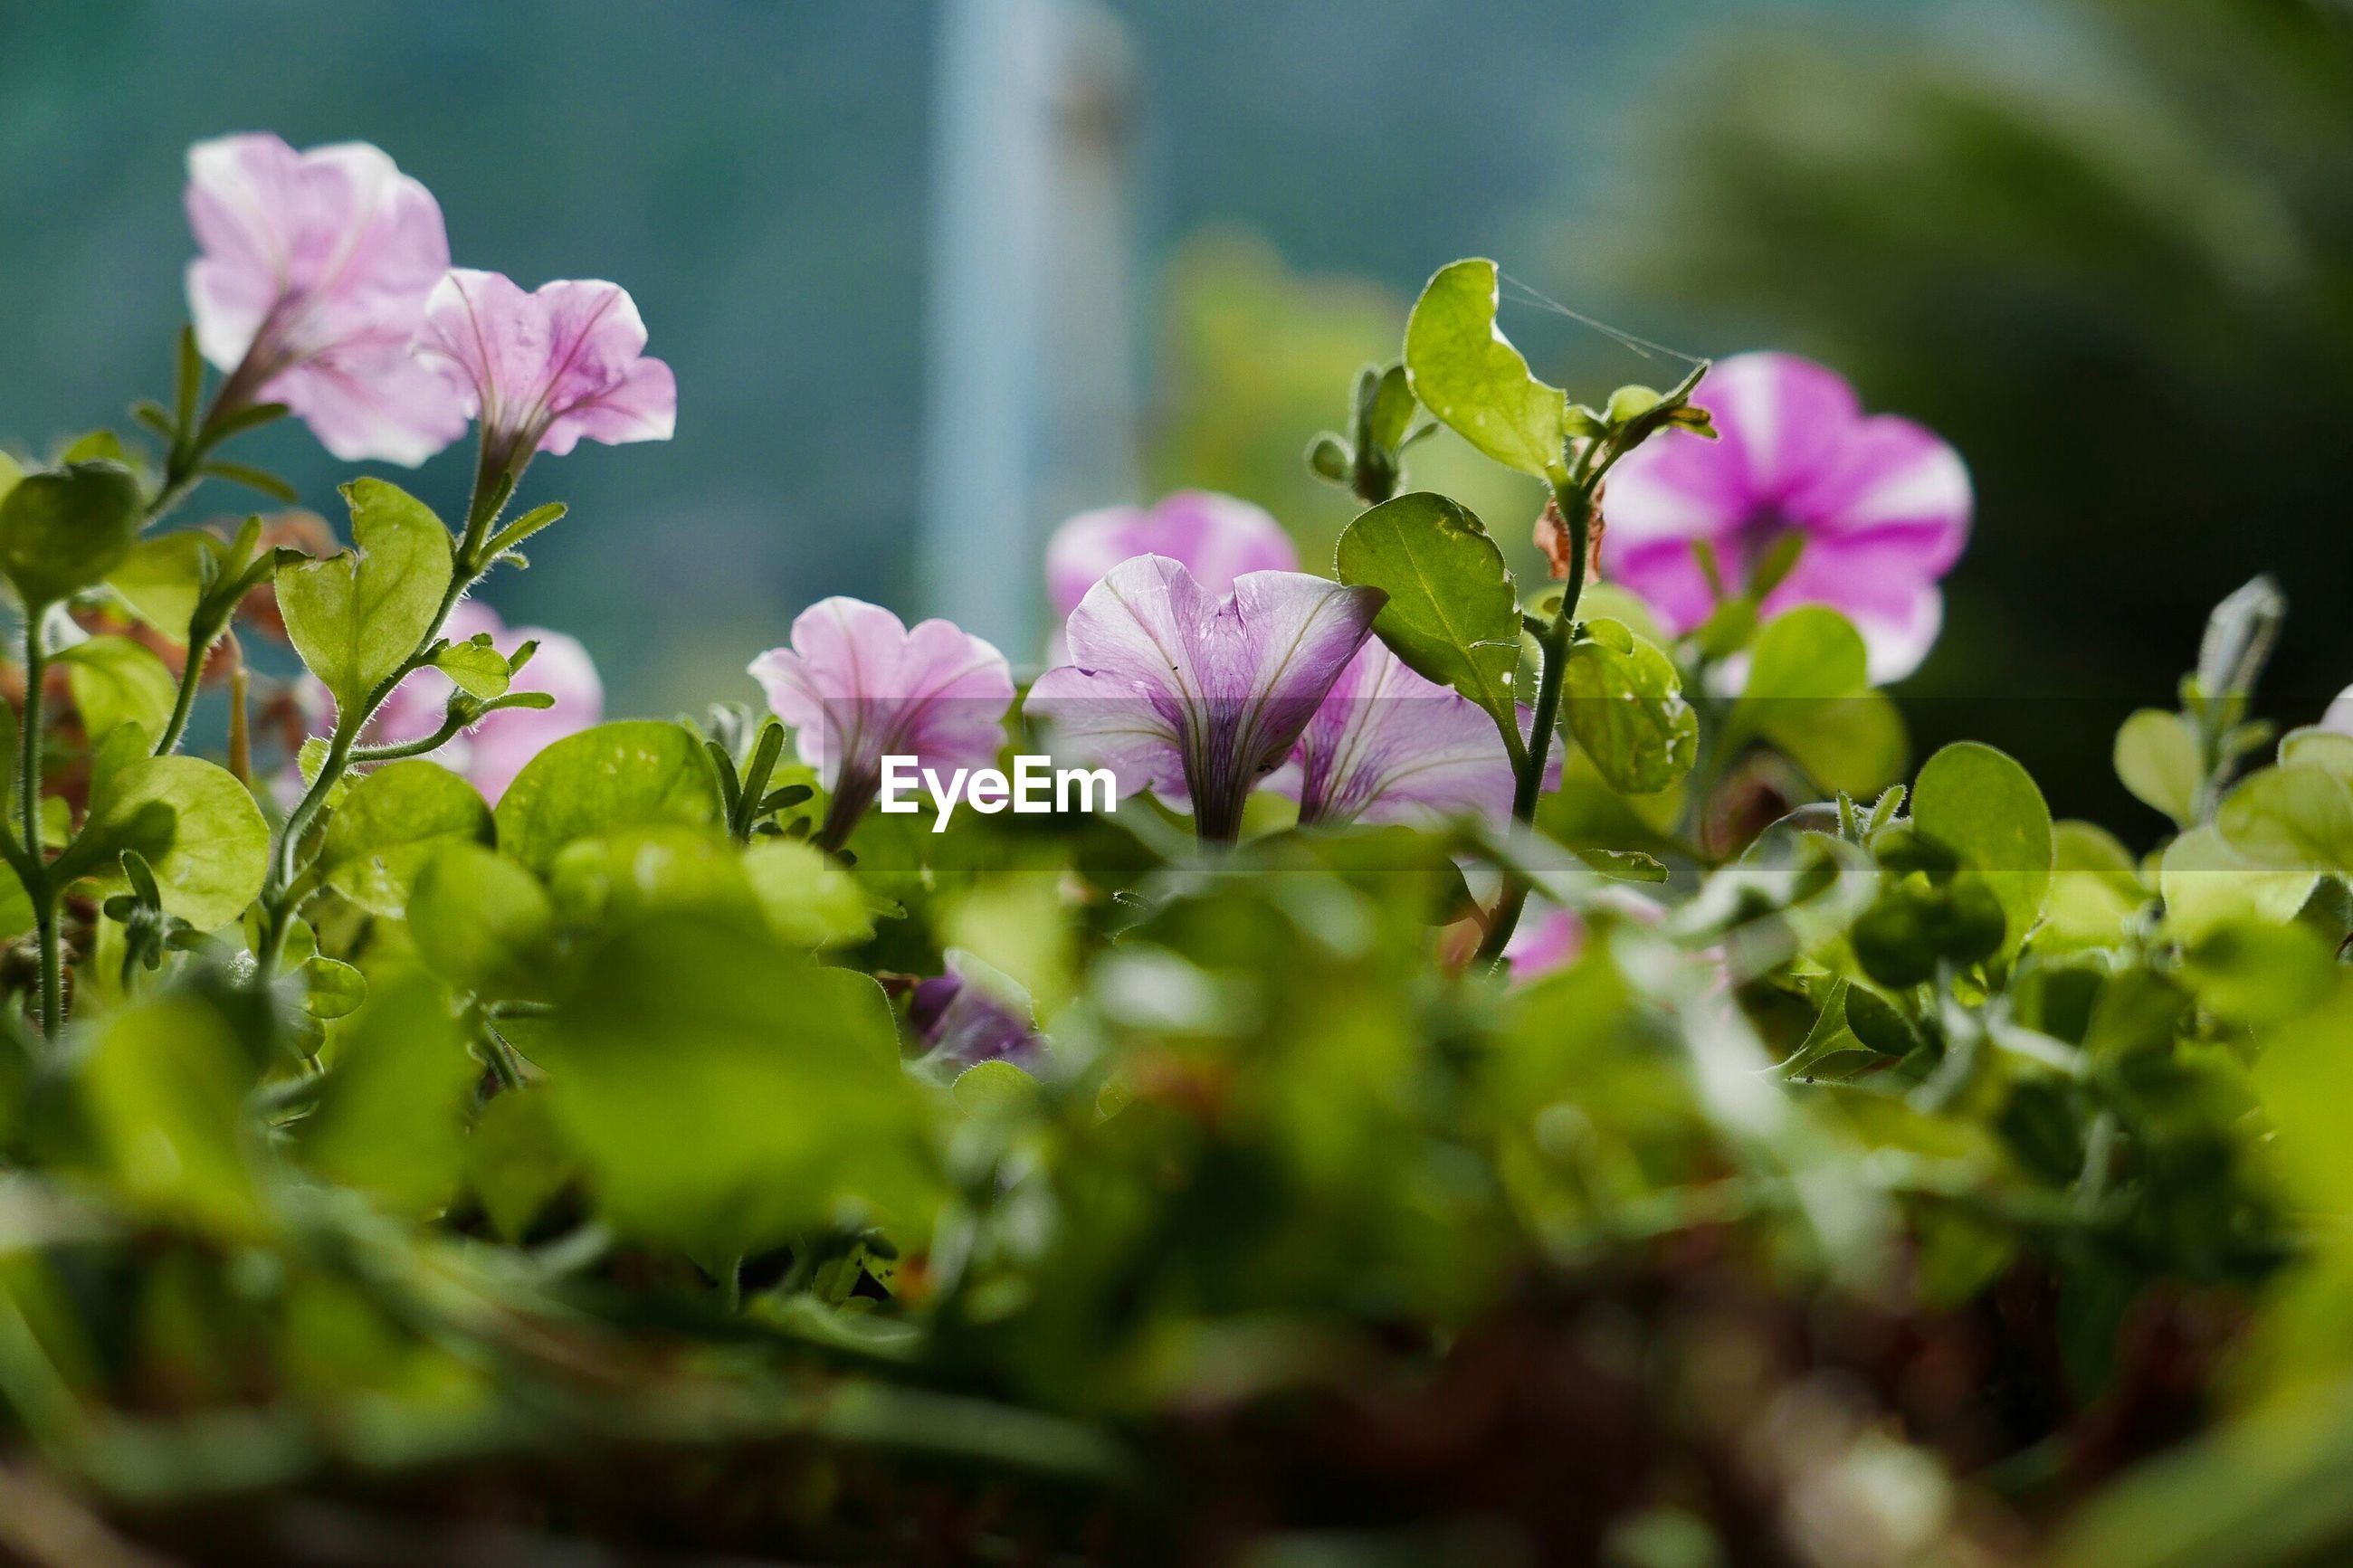 flower, growth, plant, nature, beauty in nature, selective focus, fragility, leaf, no people, outdoors, green color, petal, freshness, day, close-up, blooming, flower head